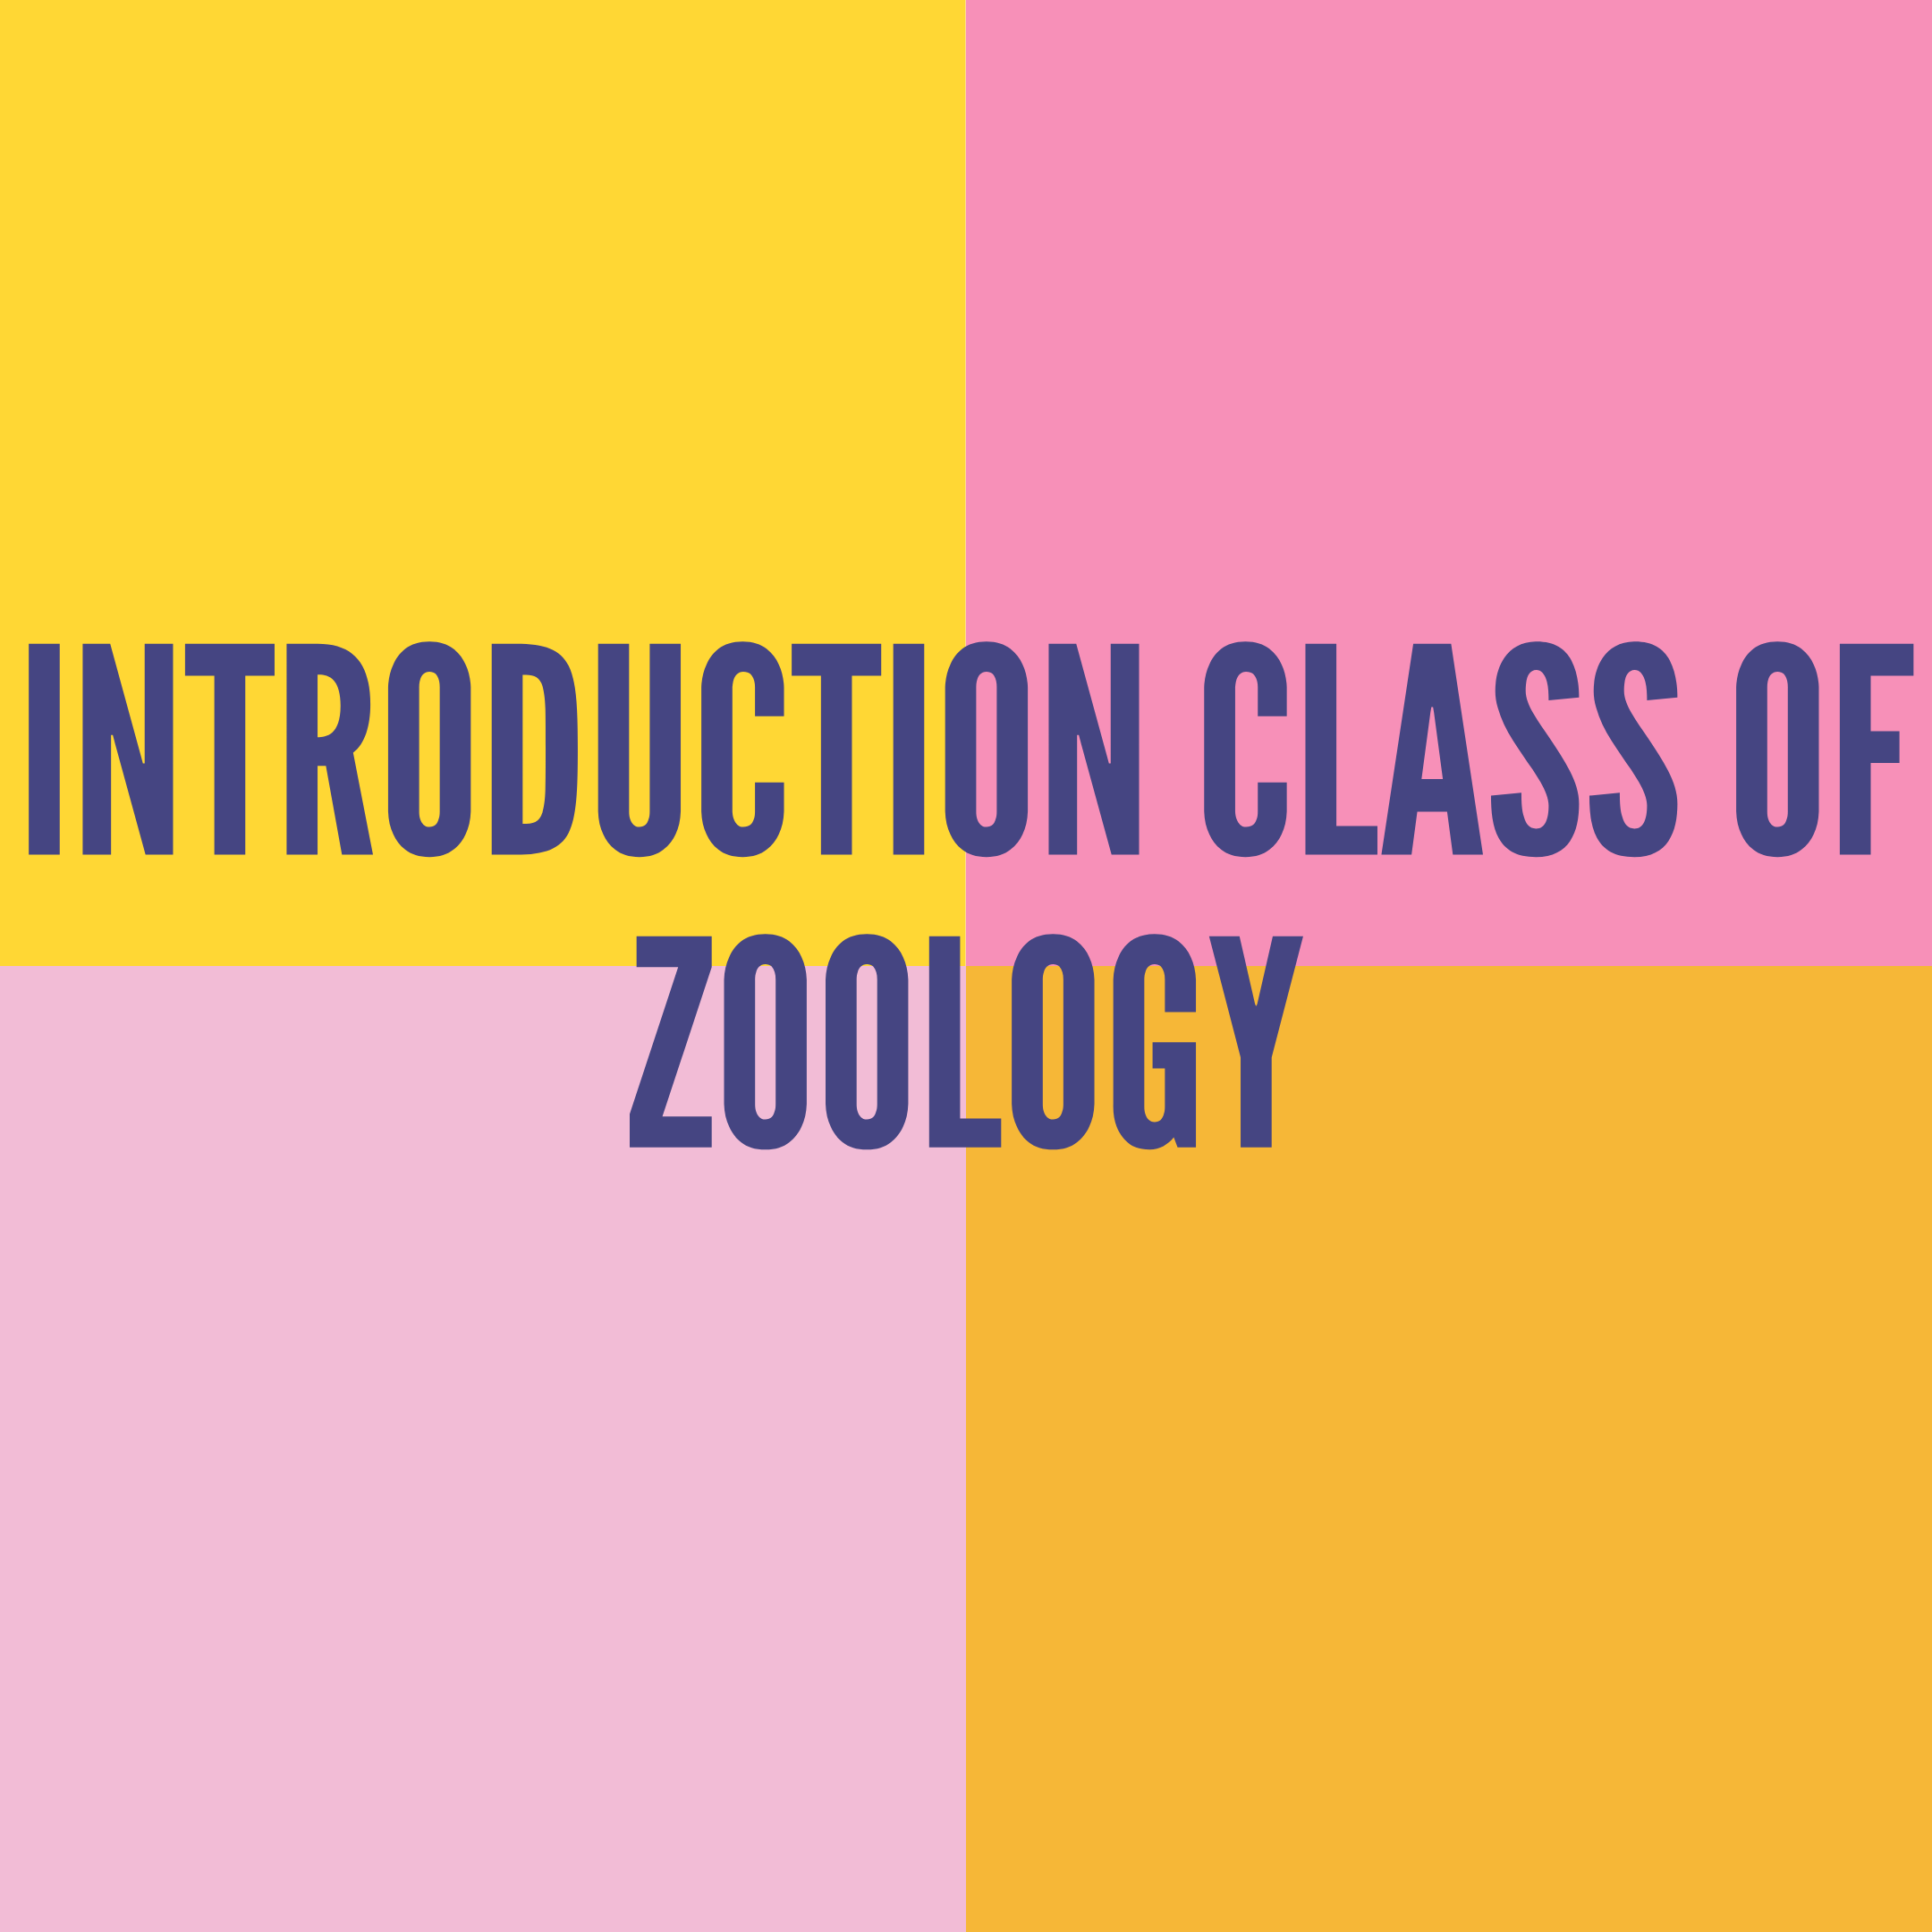 INTRODUCTION CLASS OF ZOOLOGY